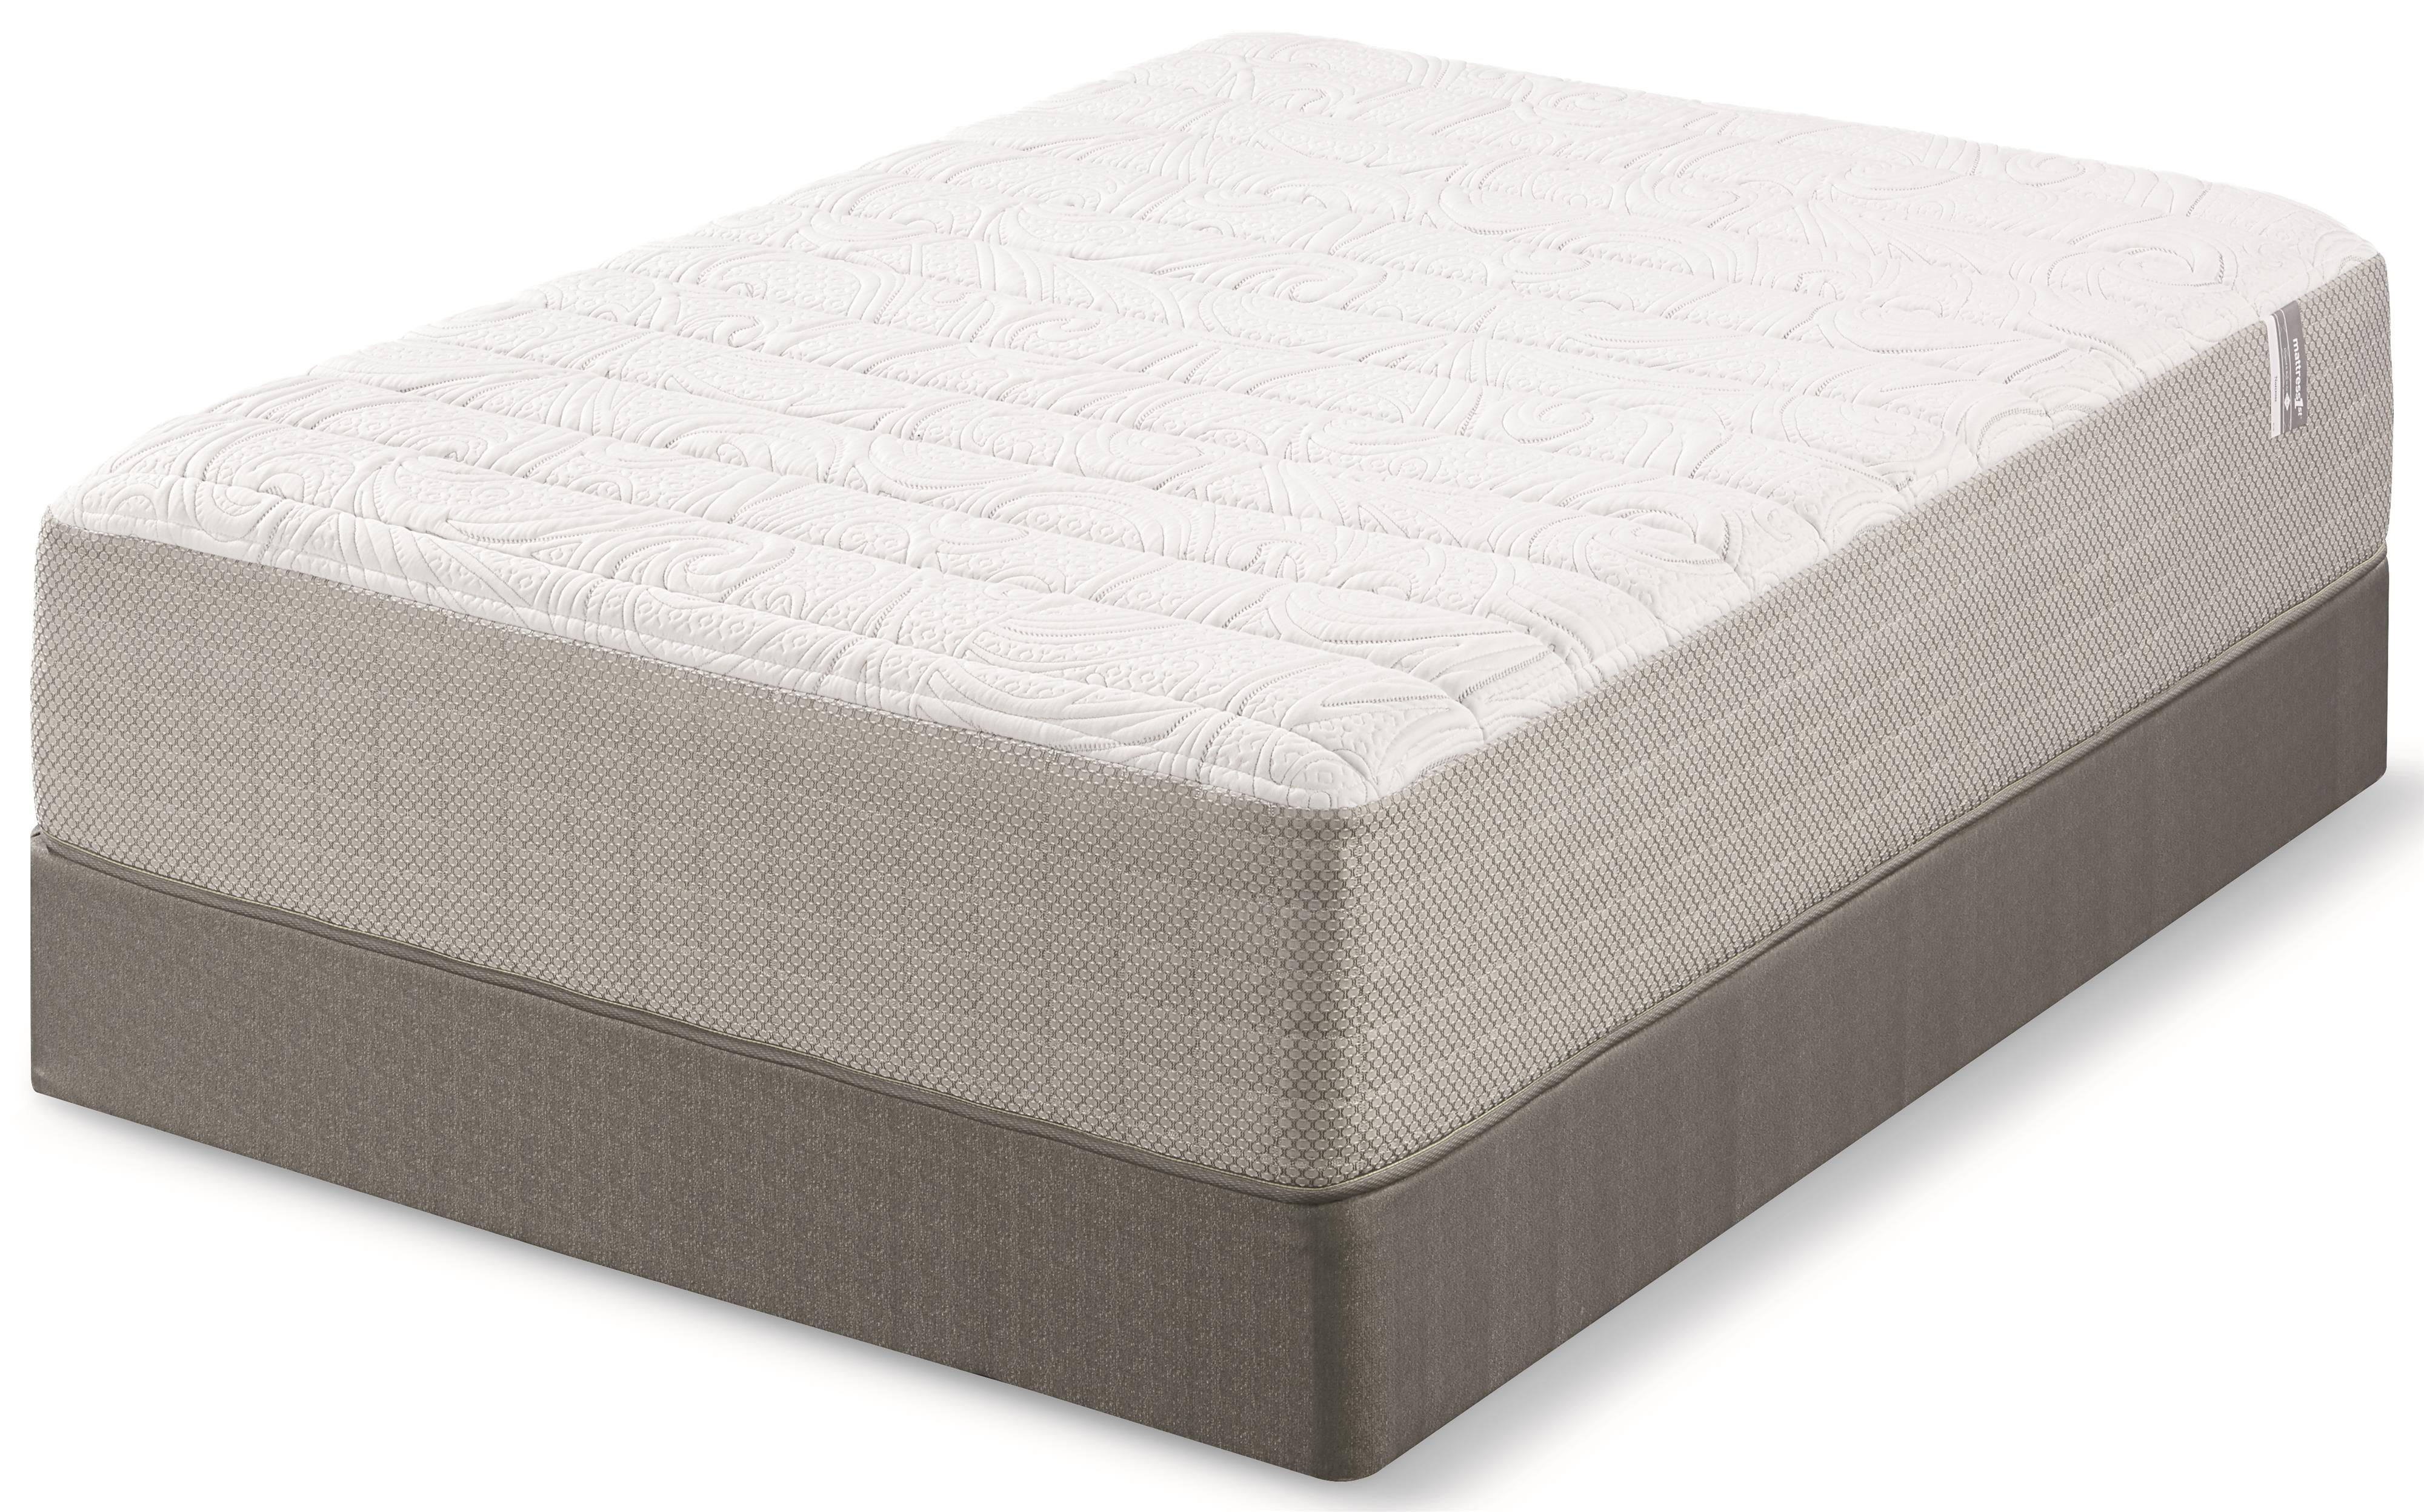 Mattress 1st Norcross Full Plush Memory Foam Mattress - Item Number: 500951132-F